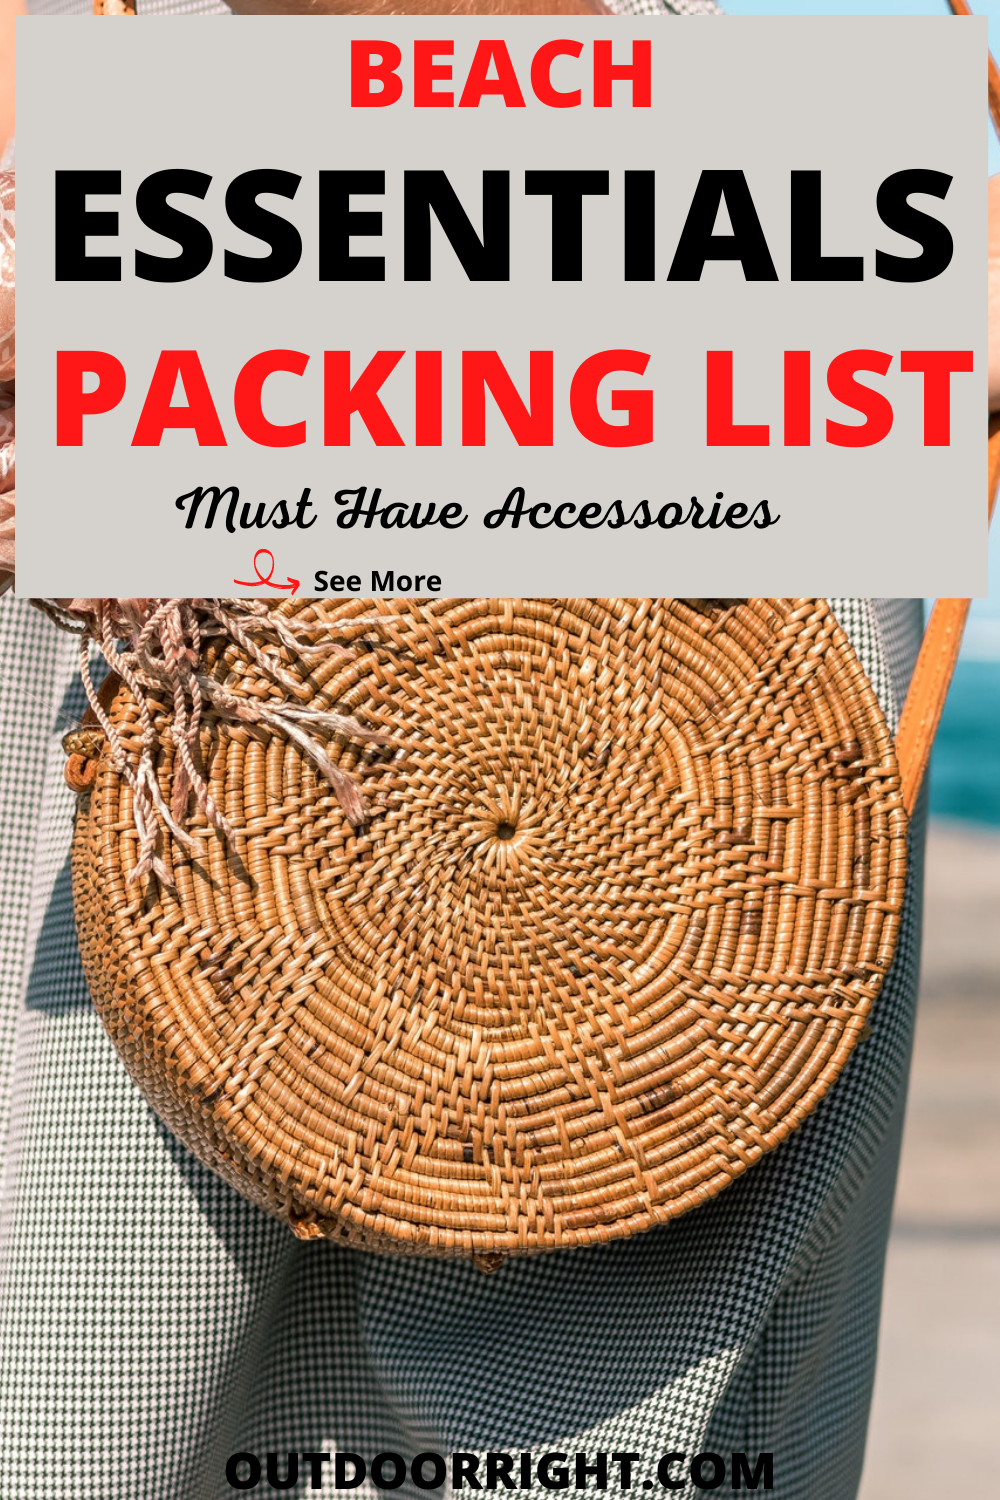 Beach Packing List